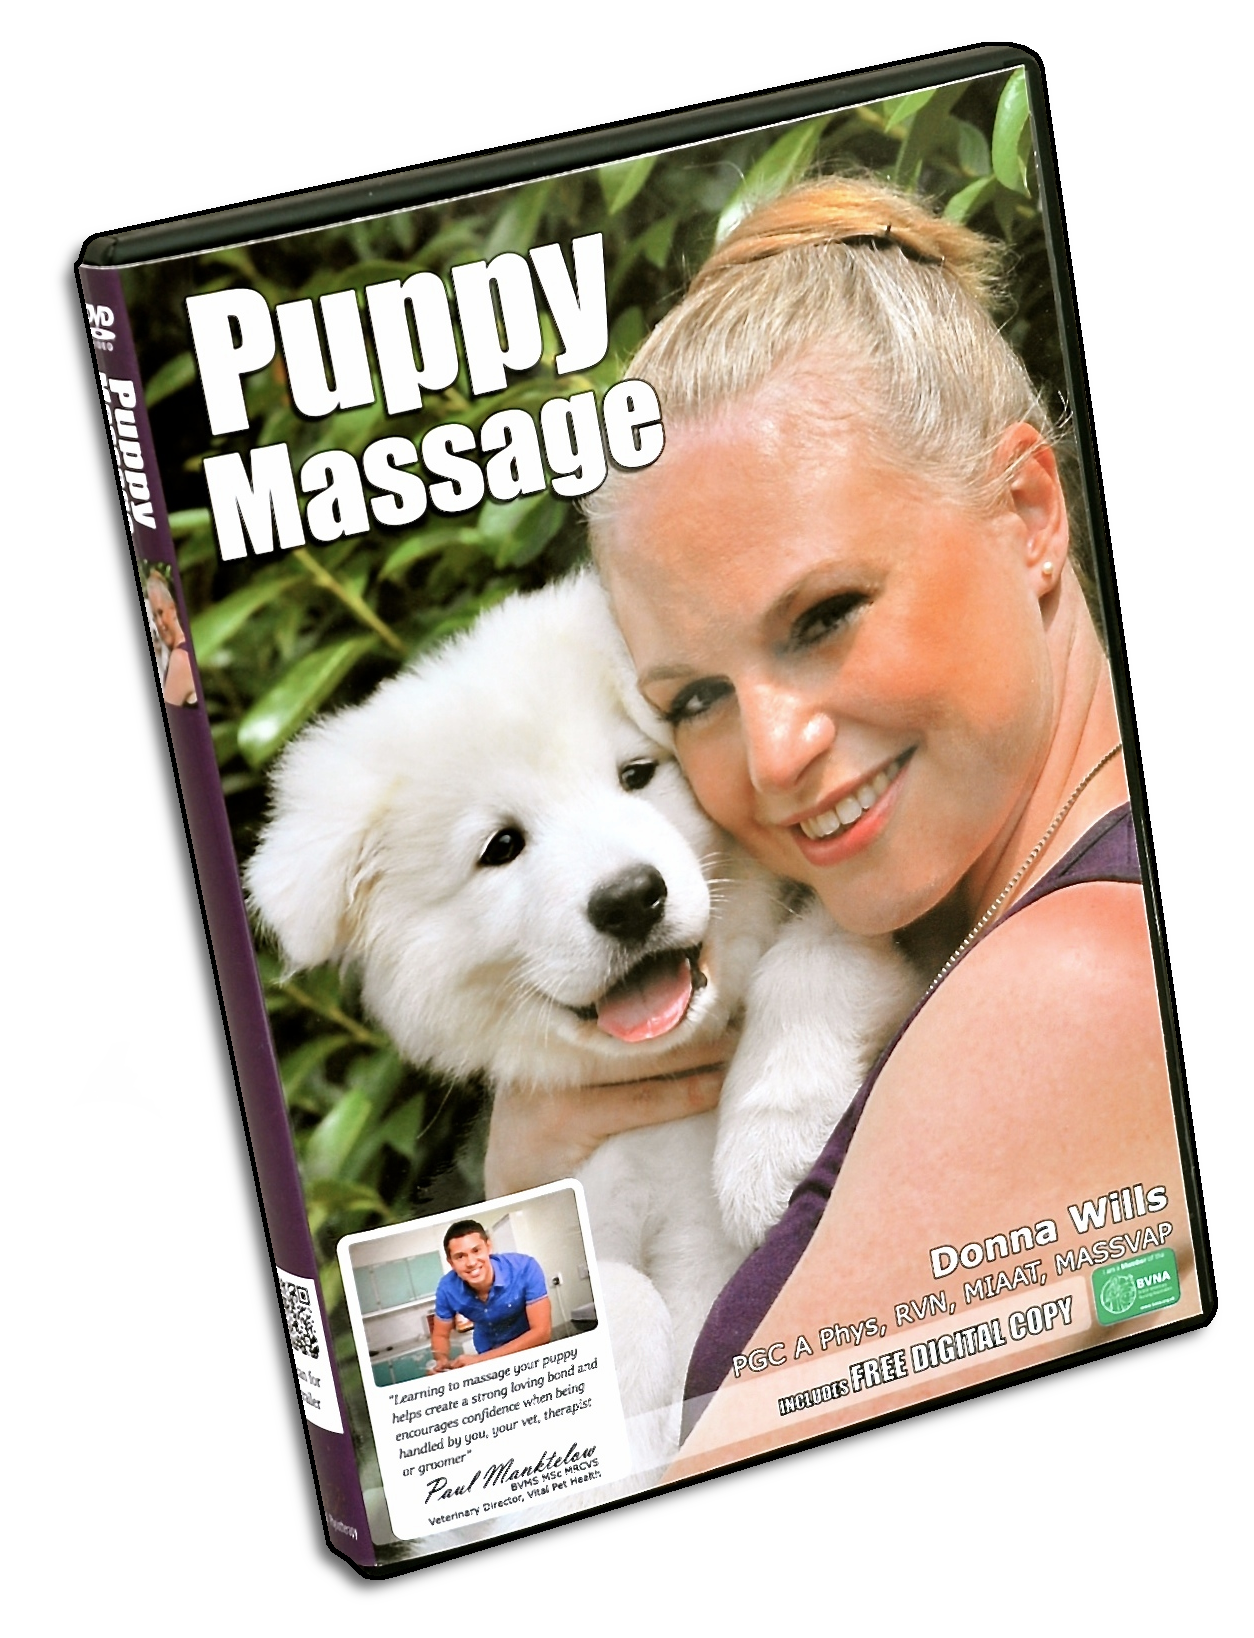 Puppy Massage DVD - Buy now with ease